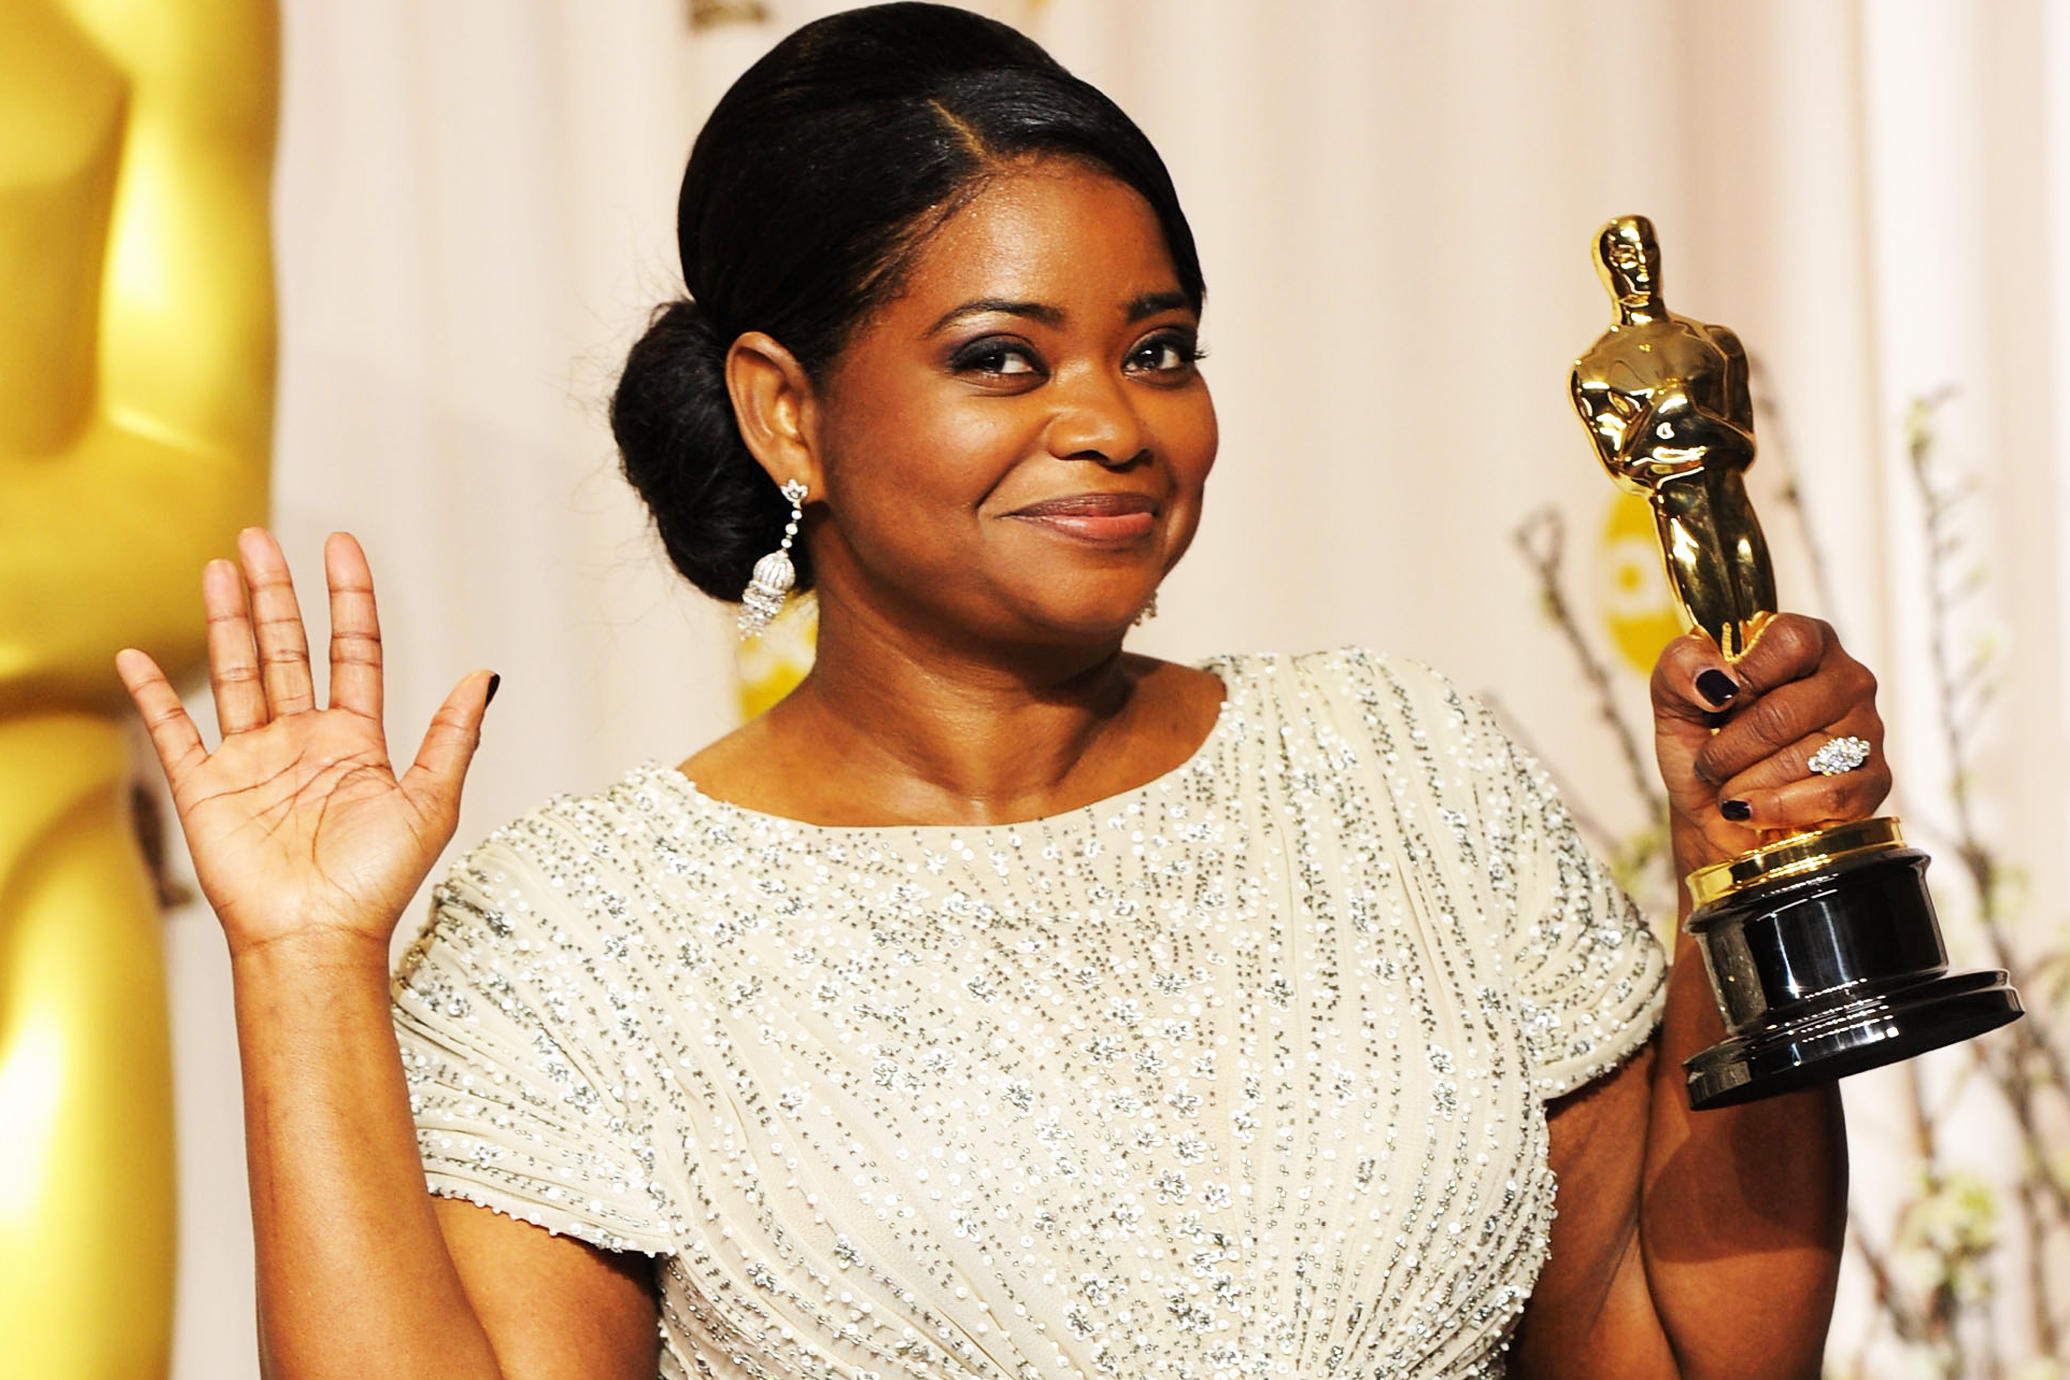 Octavia Spencer - Award winning actress known for The Help and Hidden Figures